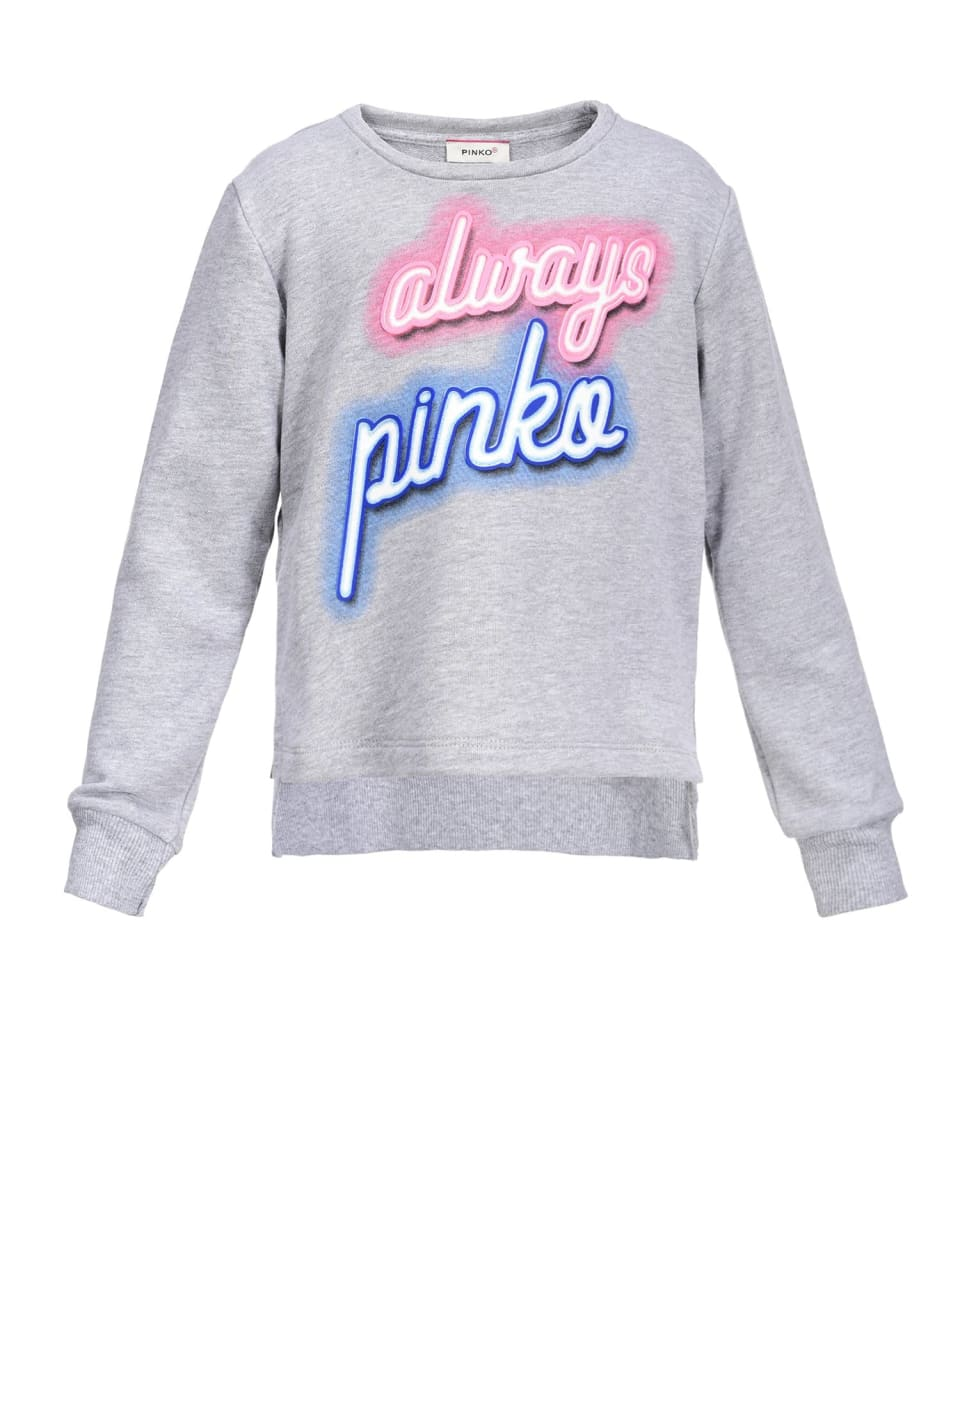 Always PINKO sweatshirt